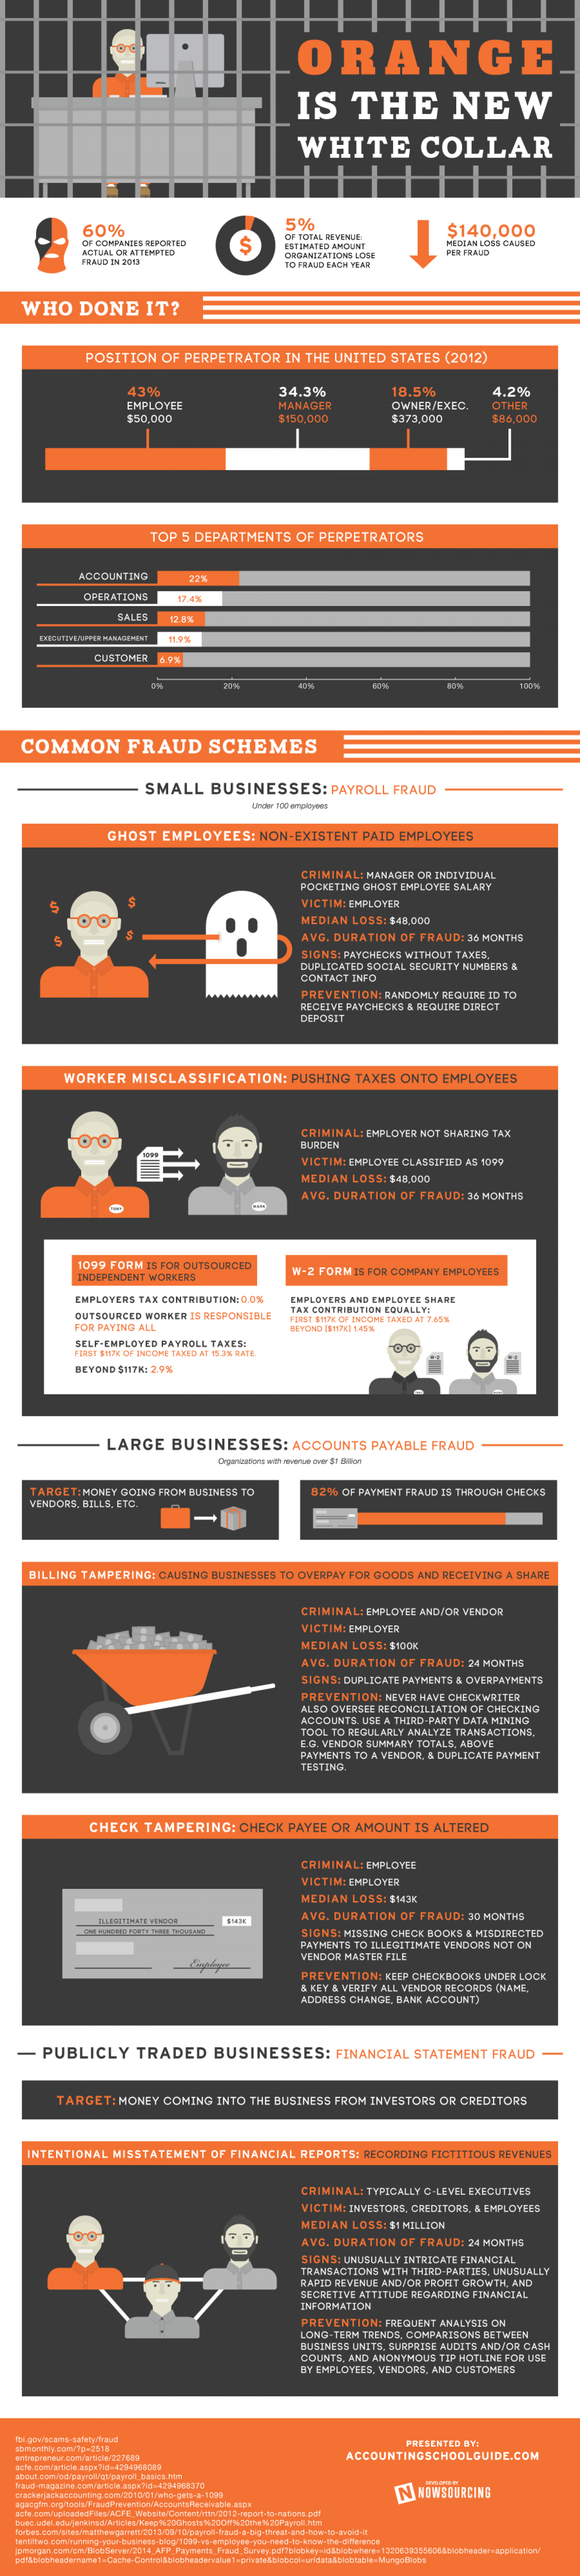 Orange is the New White Collar Infographic